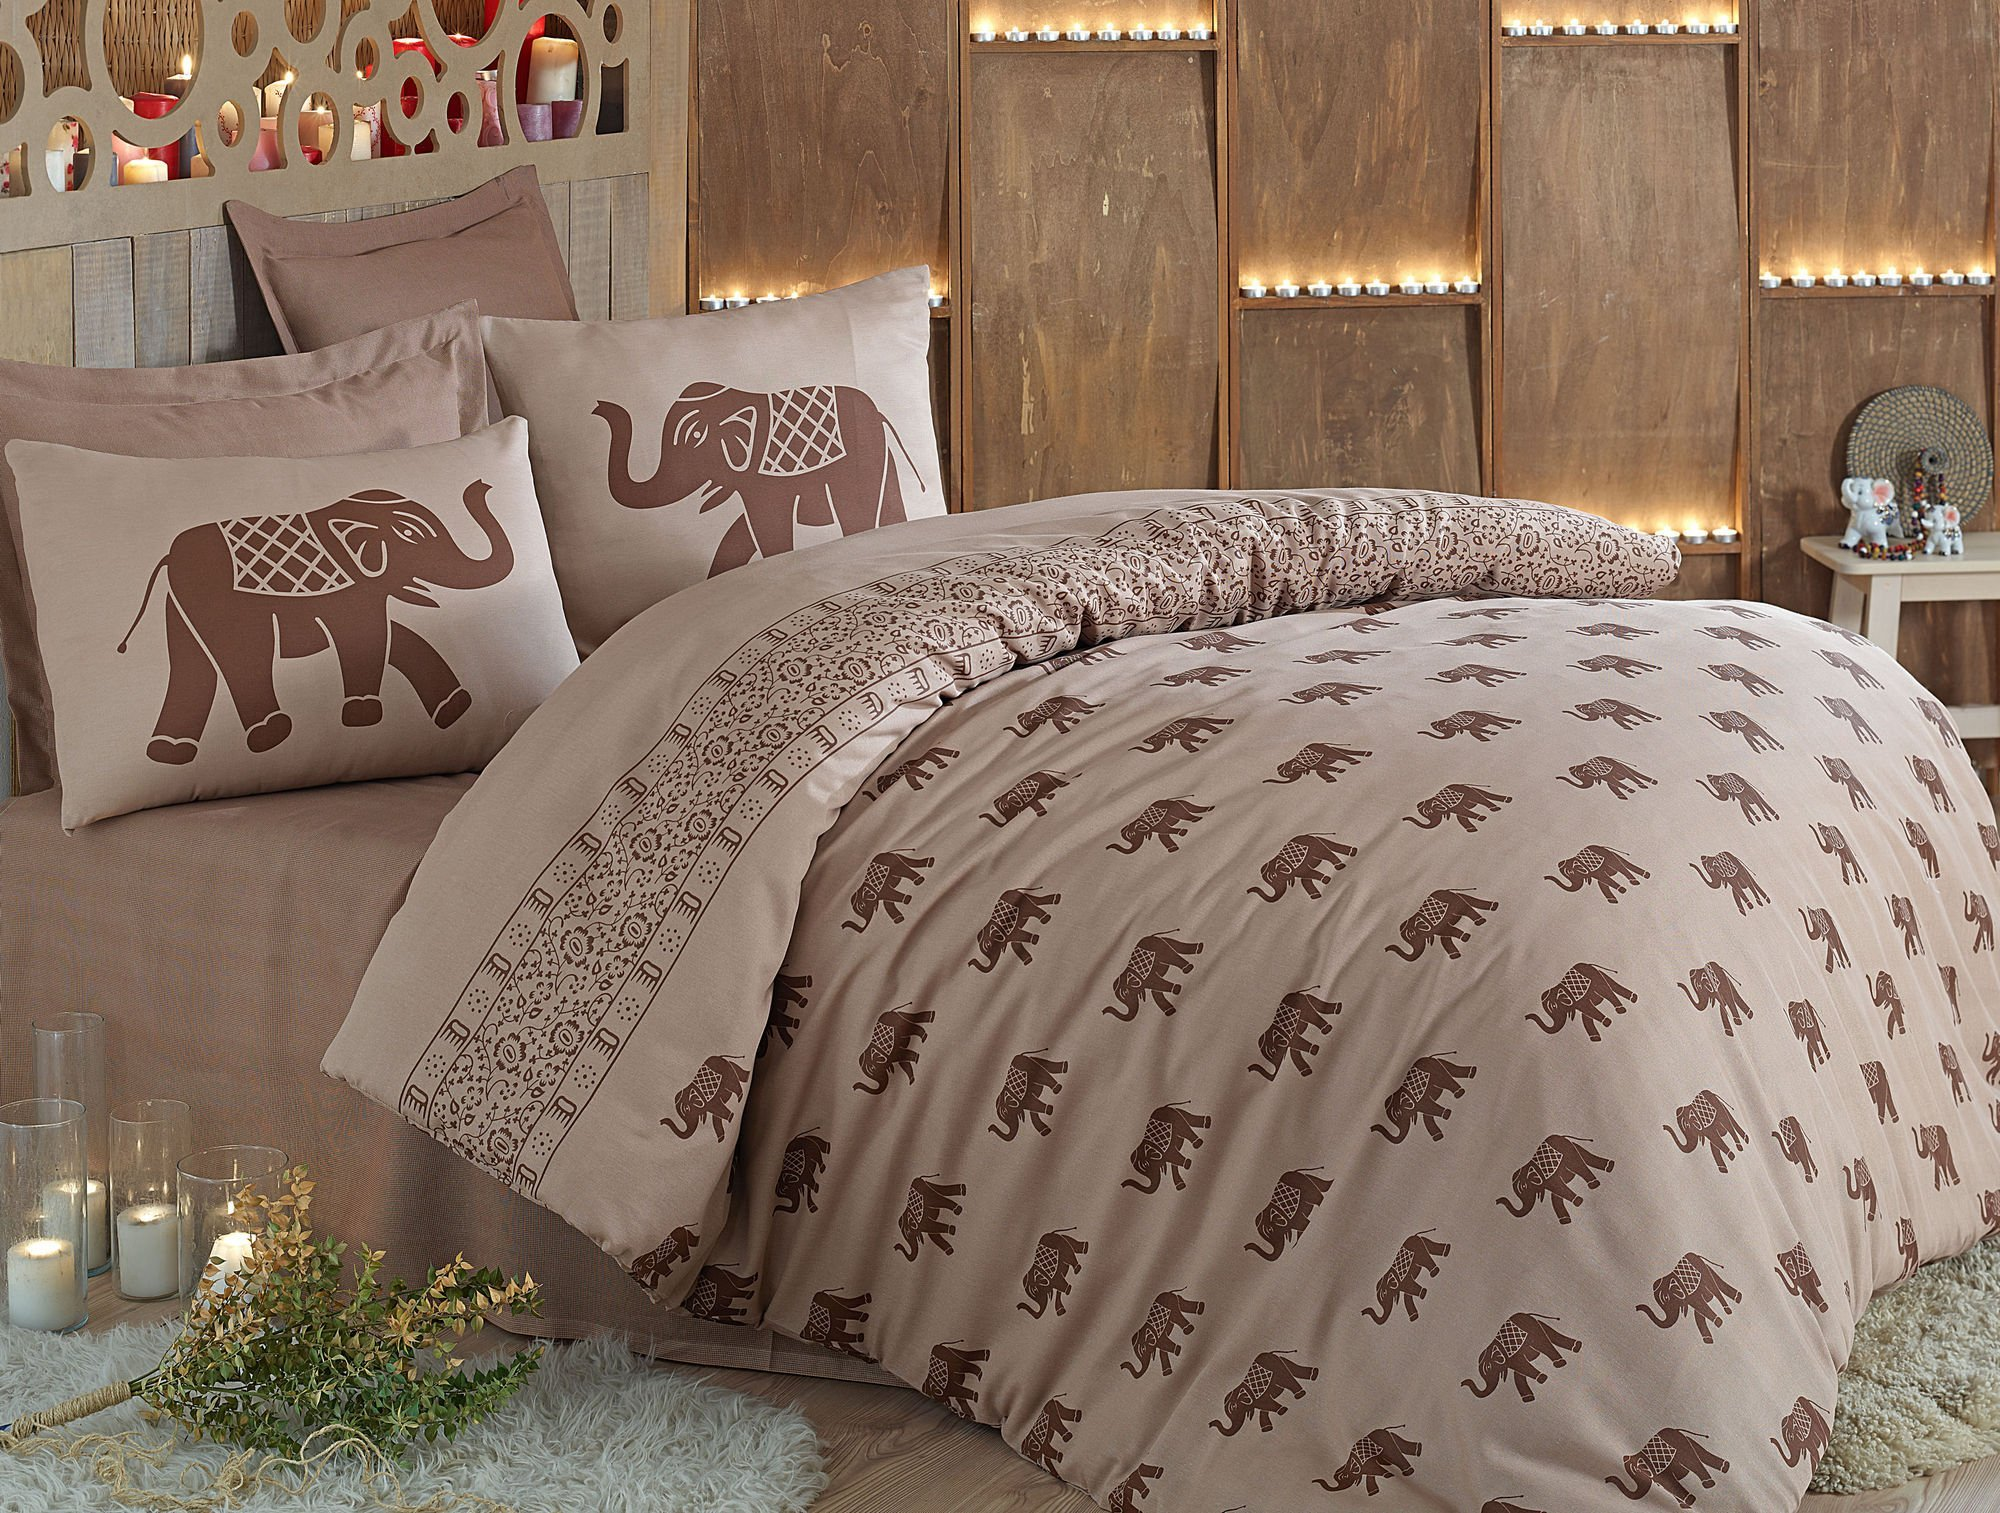 LaModaHome Animals Duvet Cover Set, 65% Cotton 35% Polyester - Elephant Pack with Saddle on It's Back - Set of 3 - Duvet Cover and Two Pillowcases for Full Bed by LaModaHome